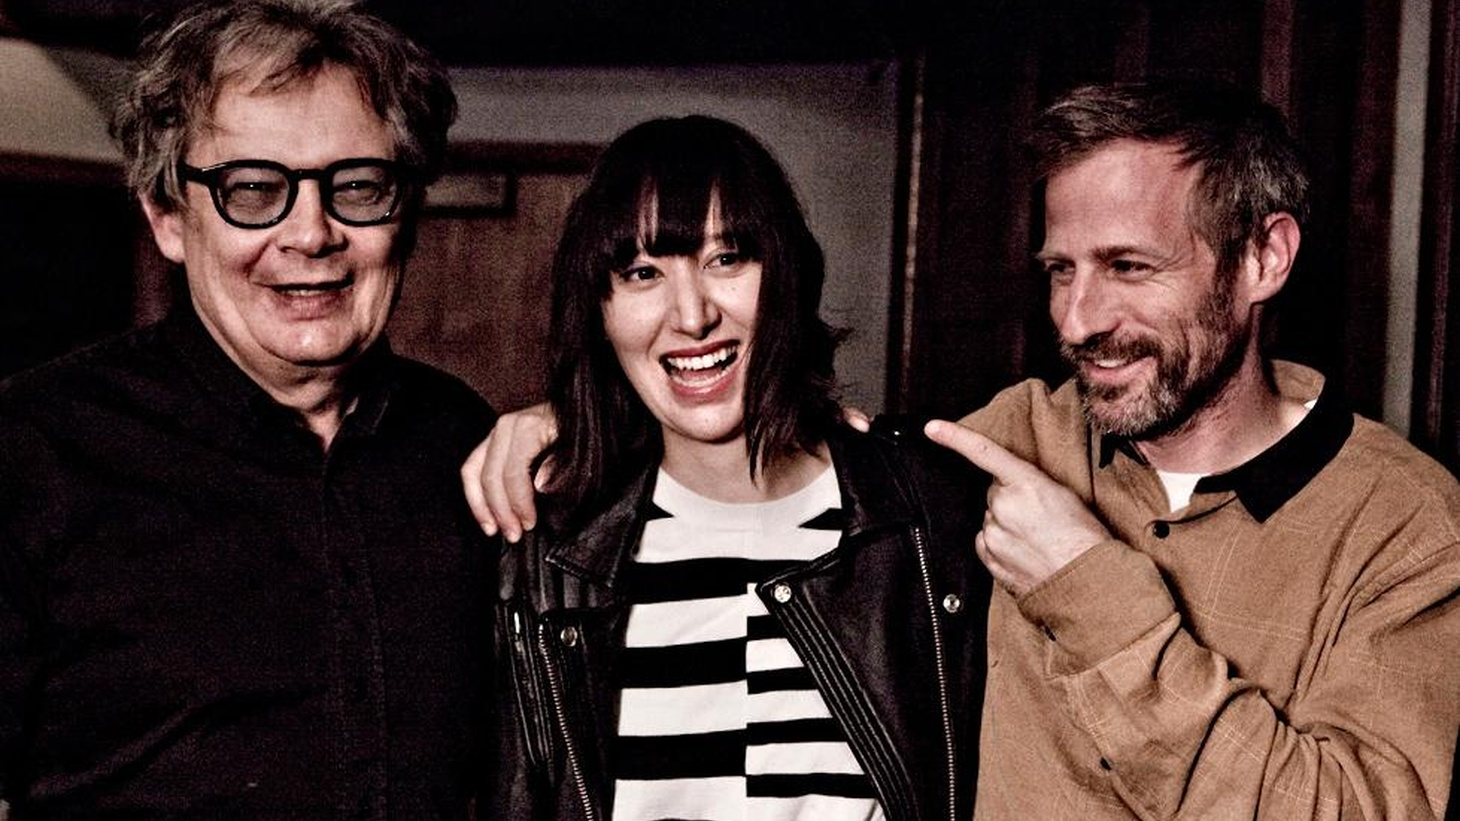 """In the 10 o'clock hour, Spike Jonze, Karen O, and KK Barrett perform the Oscar-nominated """"The Moon Song,"""" exclusively for KCRW and chat about the film Her."""